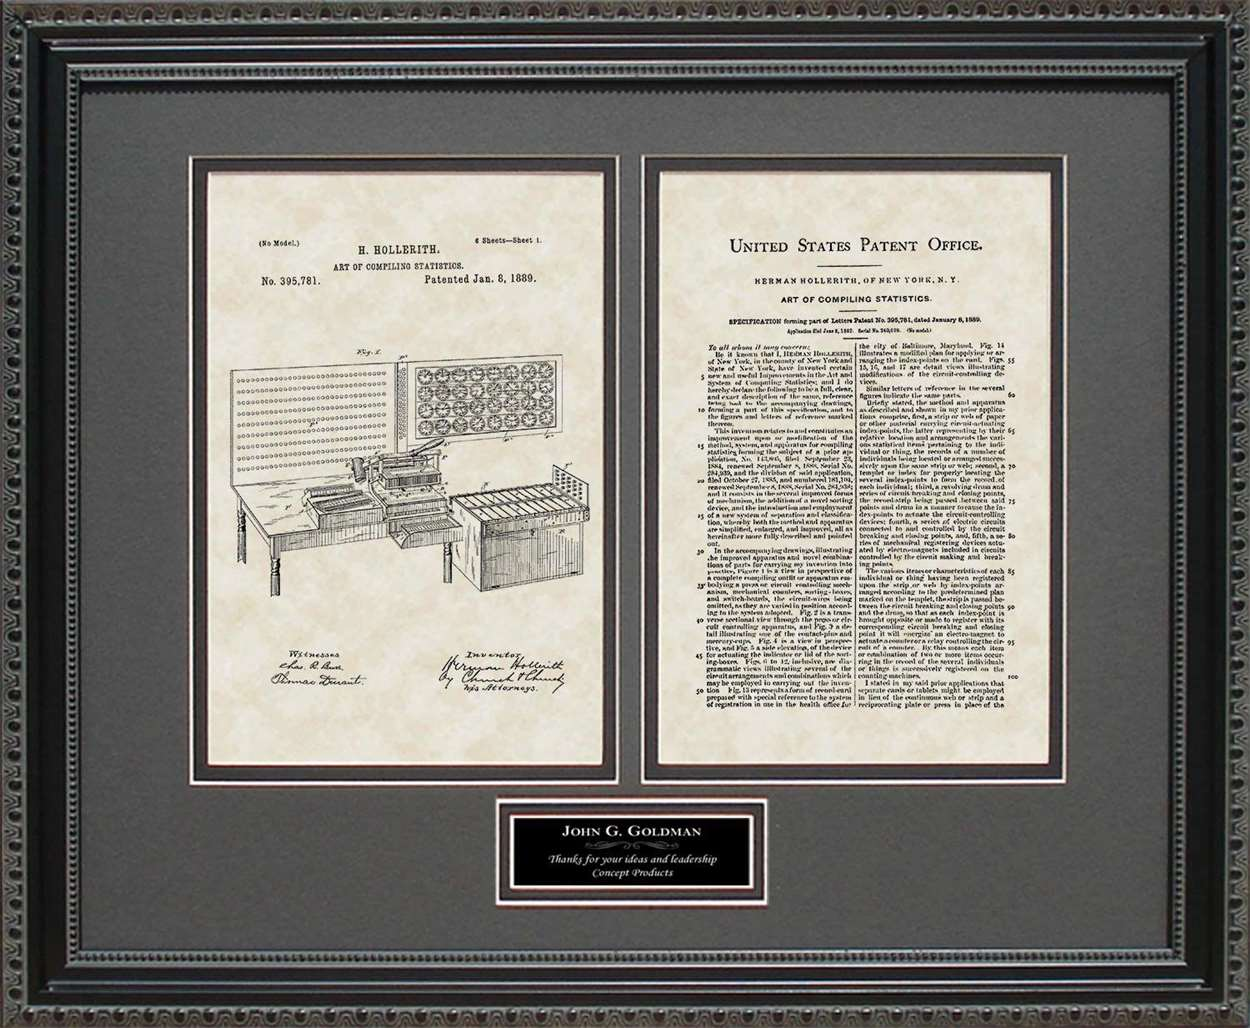 Personalized Punch Card Tabulator Patent, Art & Copy, Hollerith, 1889